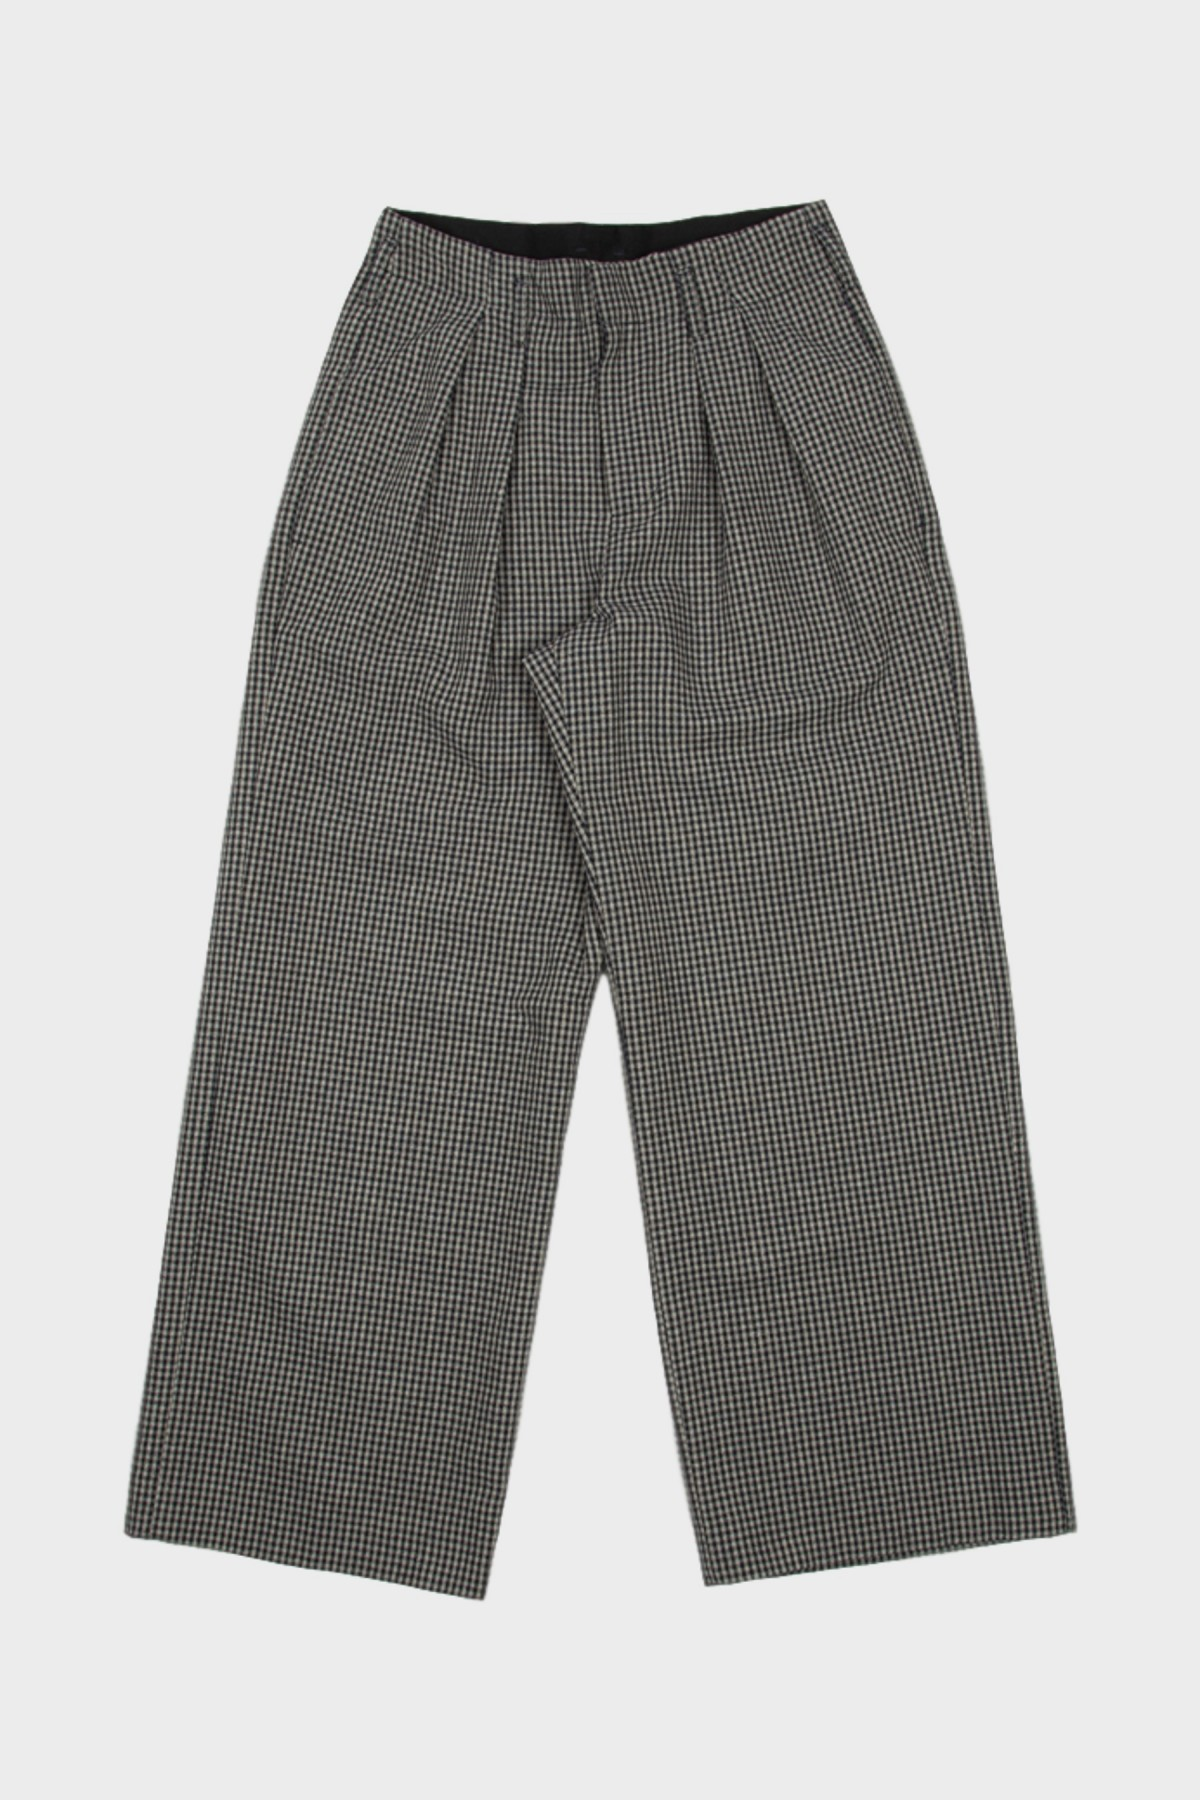 Folk Double Pleat Tailored Trousers in Navy Mini Check